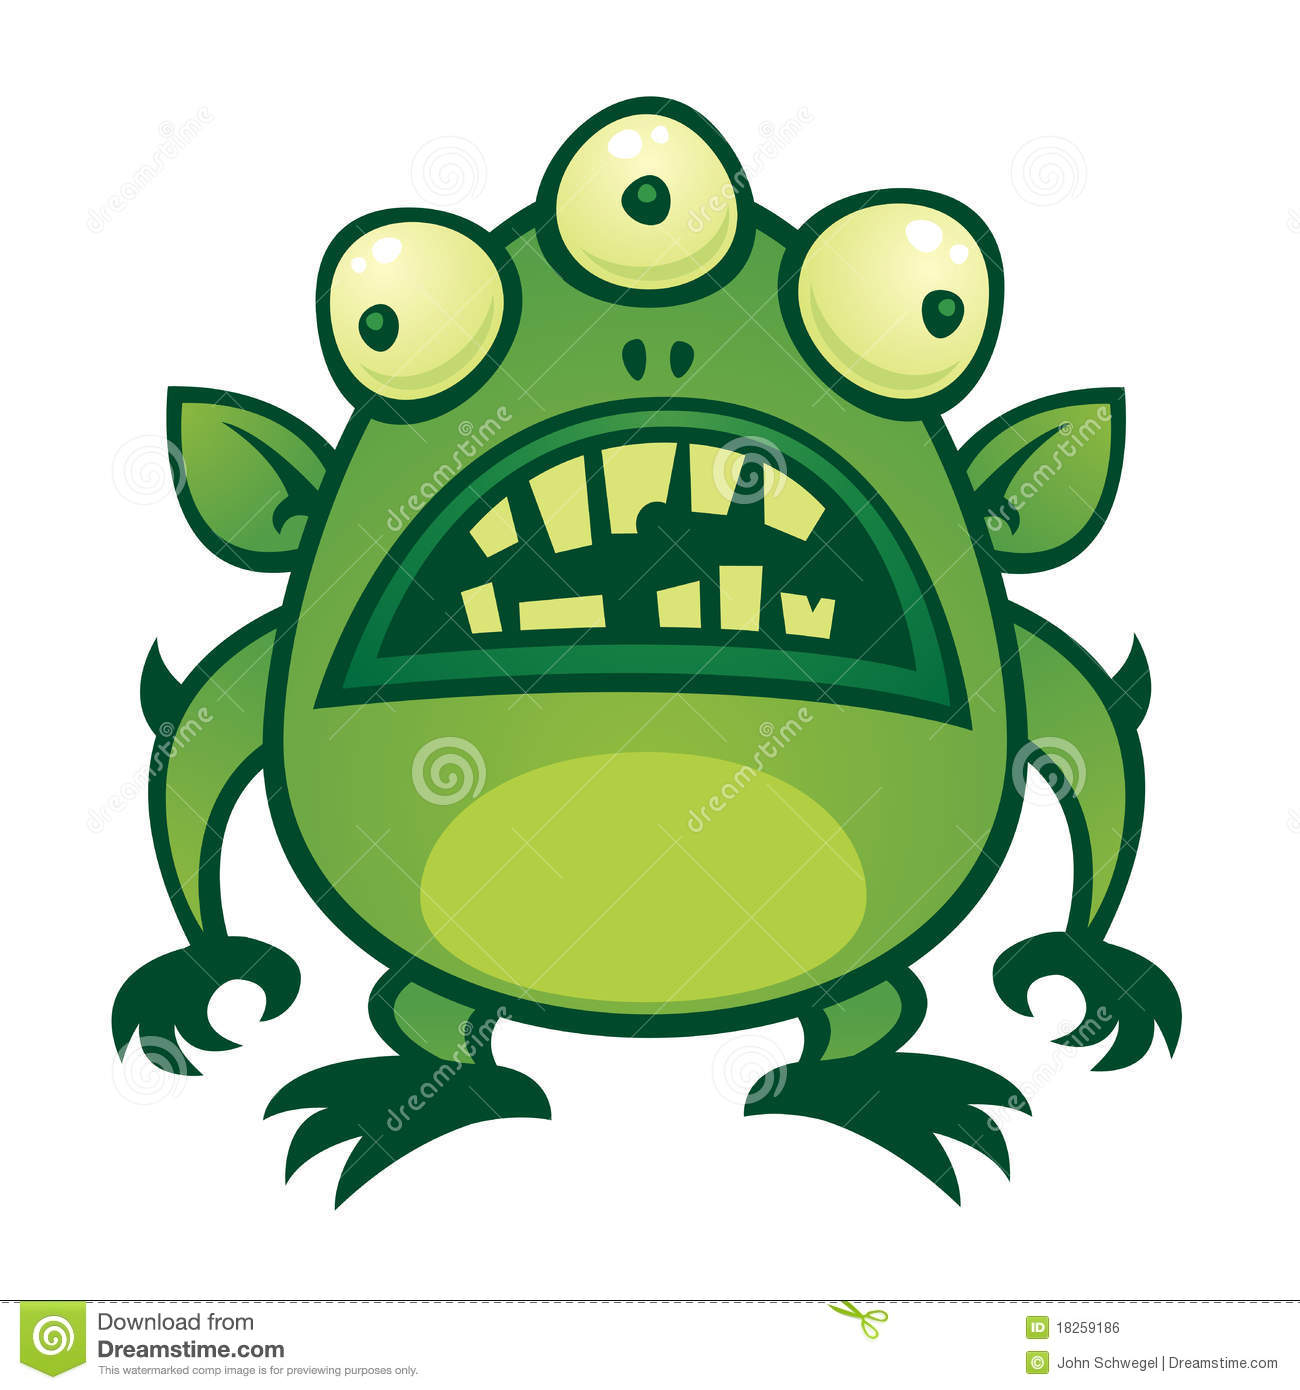 Monster Stock Photos, Images, & Pictures - 99,915 Images